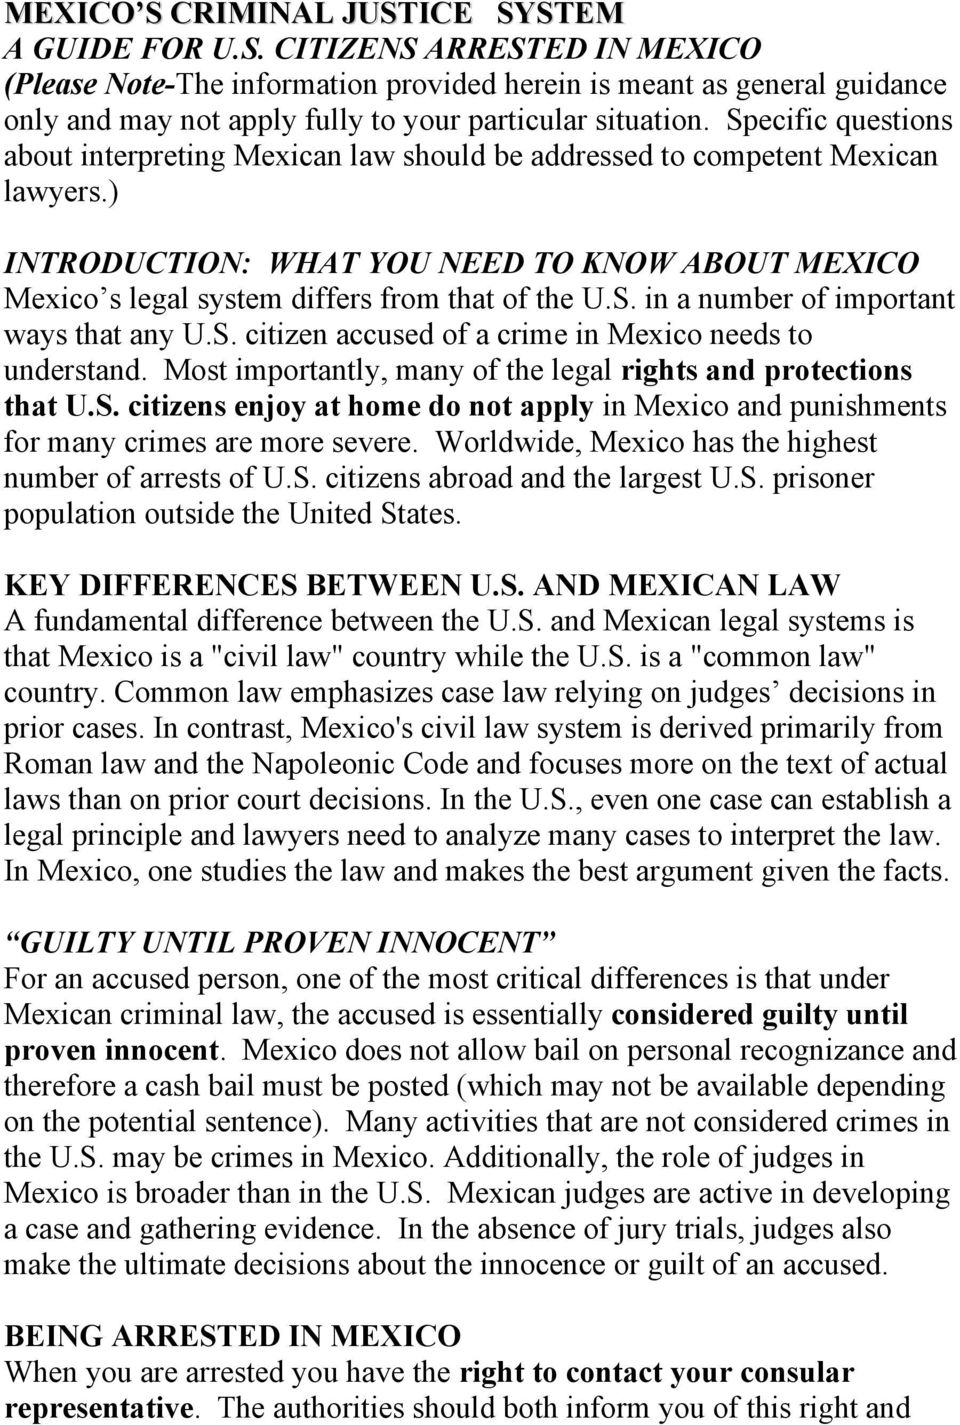 S. in a number of important ways that any U.S. citizen accused of a crime in Mexico needs to understand. Most importantly, many of the legal rights and protections that U.S. citizens enjoy at home do not apply in Mexico and punishments for many crimes are more severe.